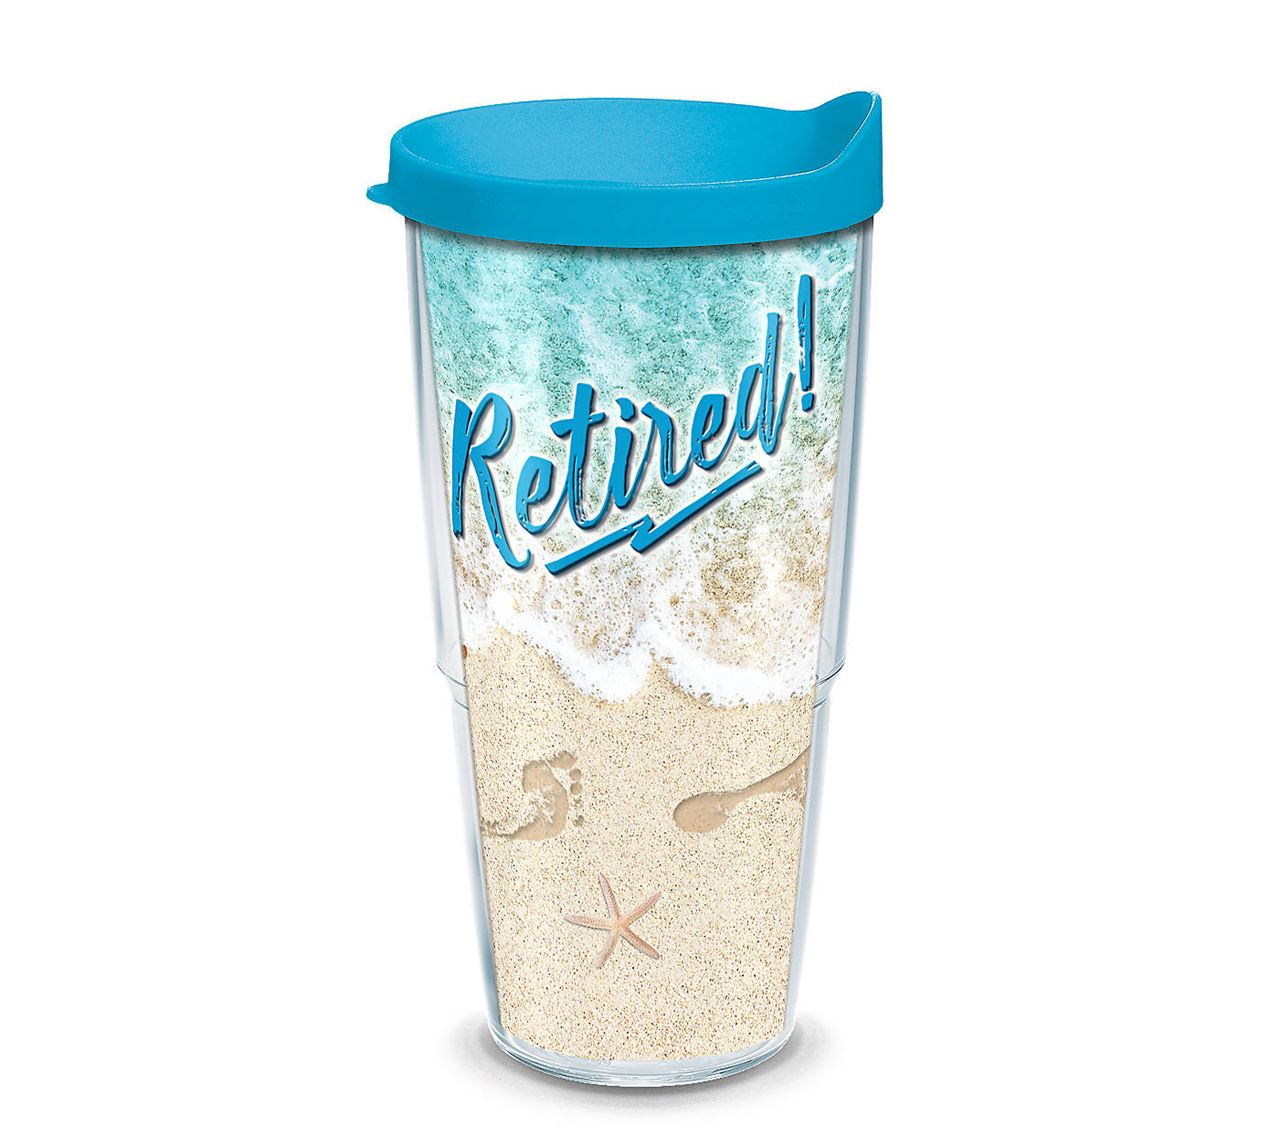 Retired Footprints 24oz. Tumbler by Tervis